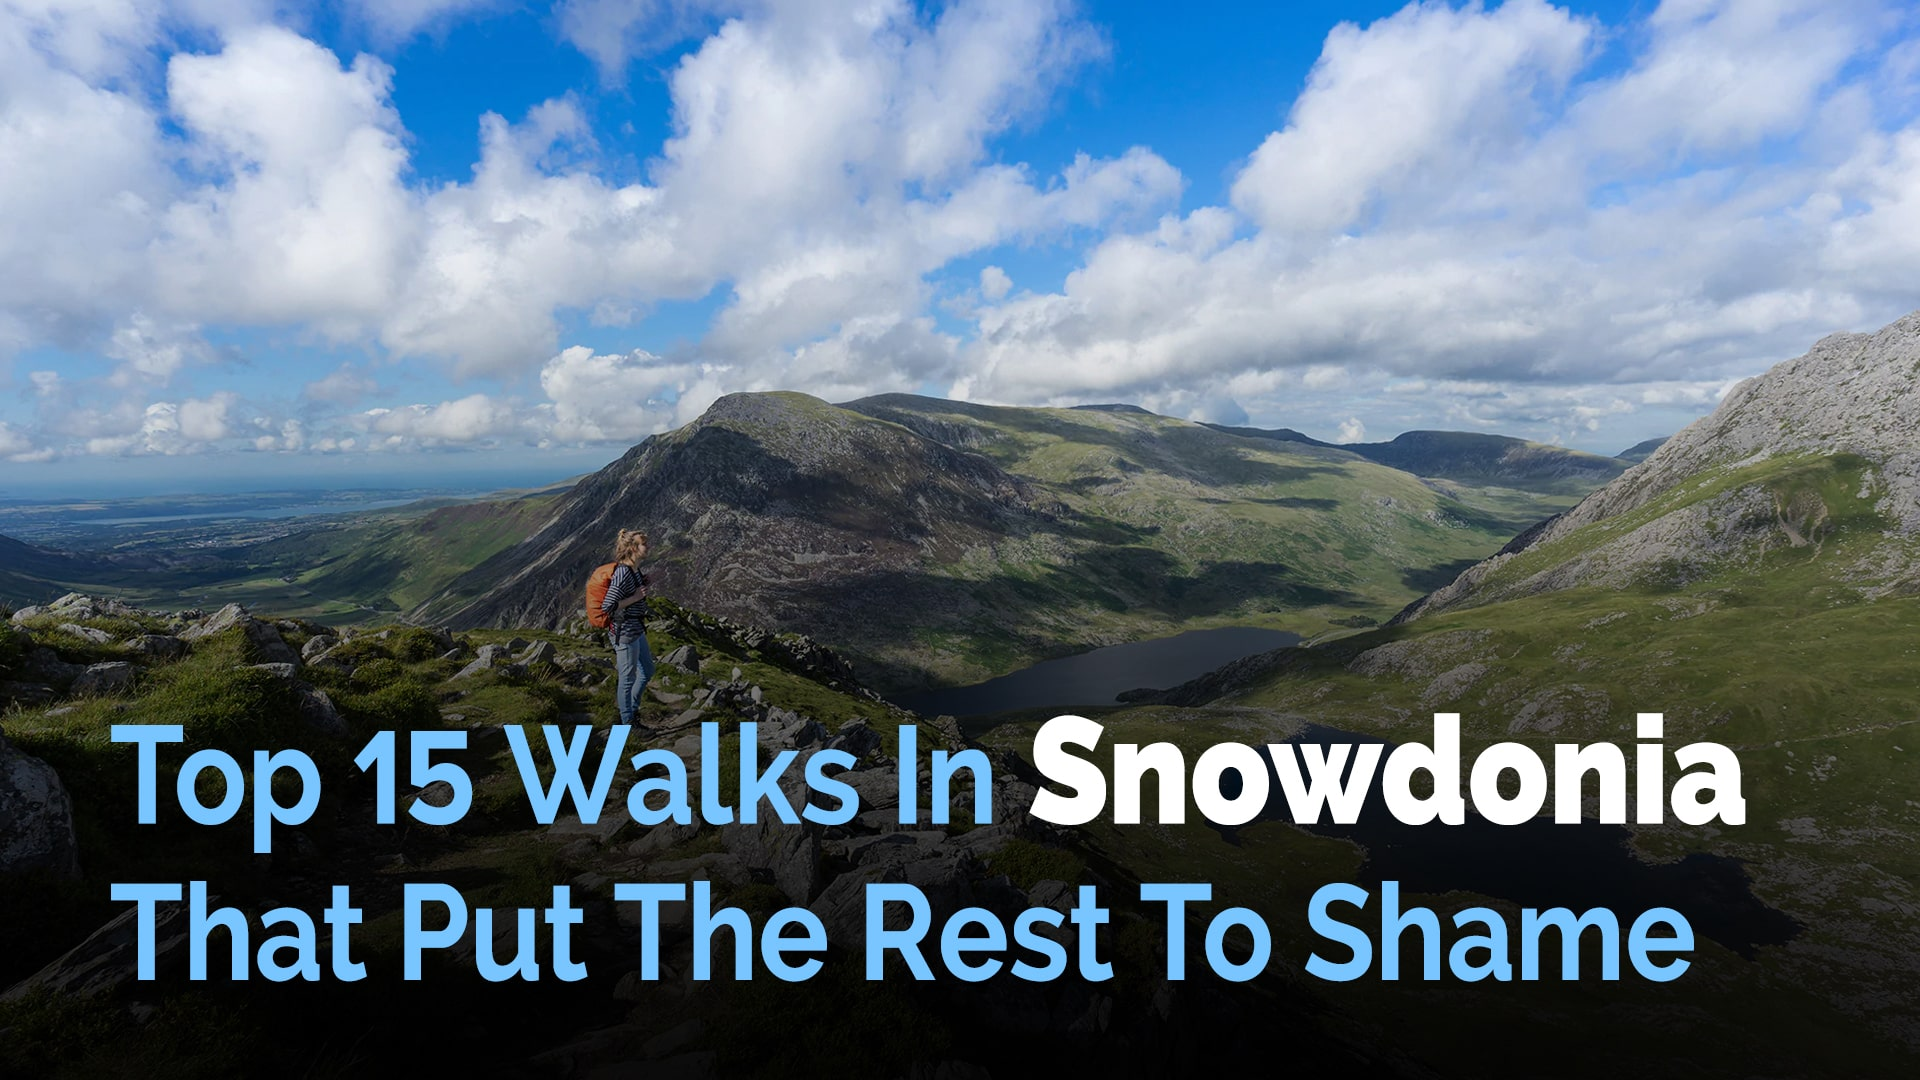 Top 15 Walks In Snowdonia That Put The Rest To Shame